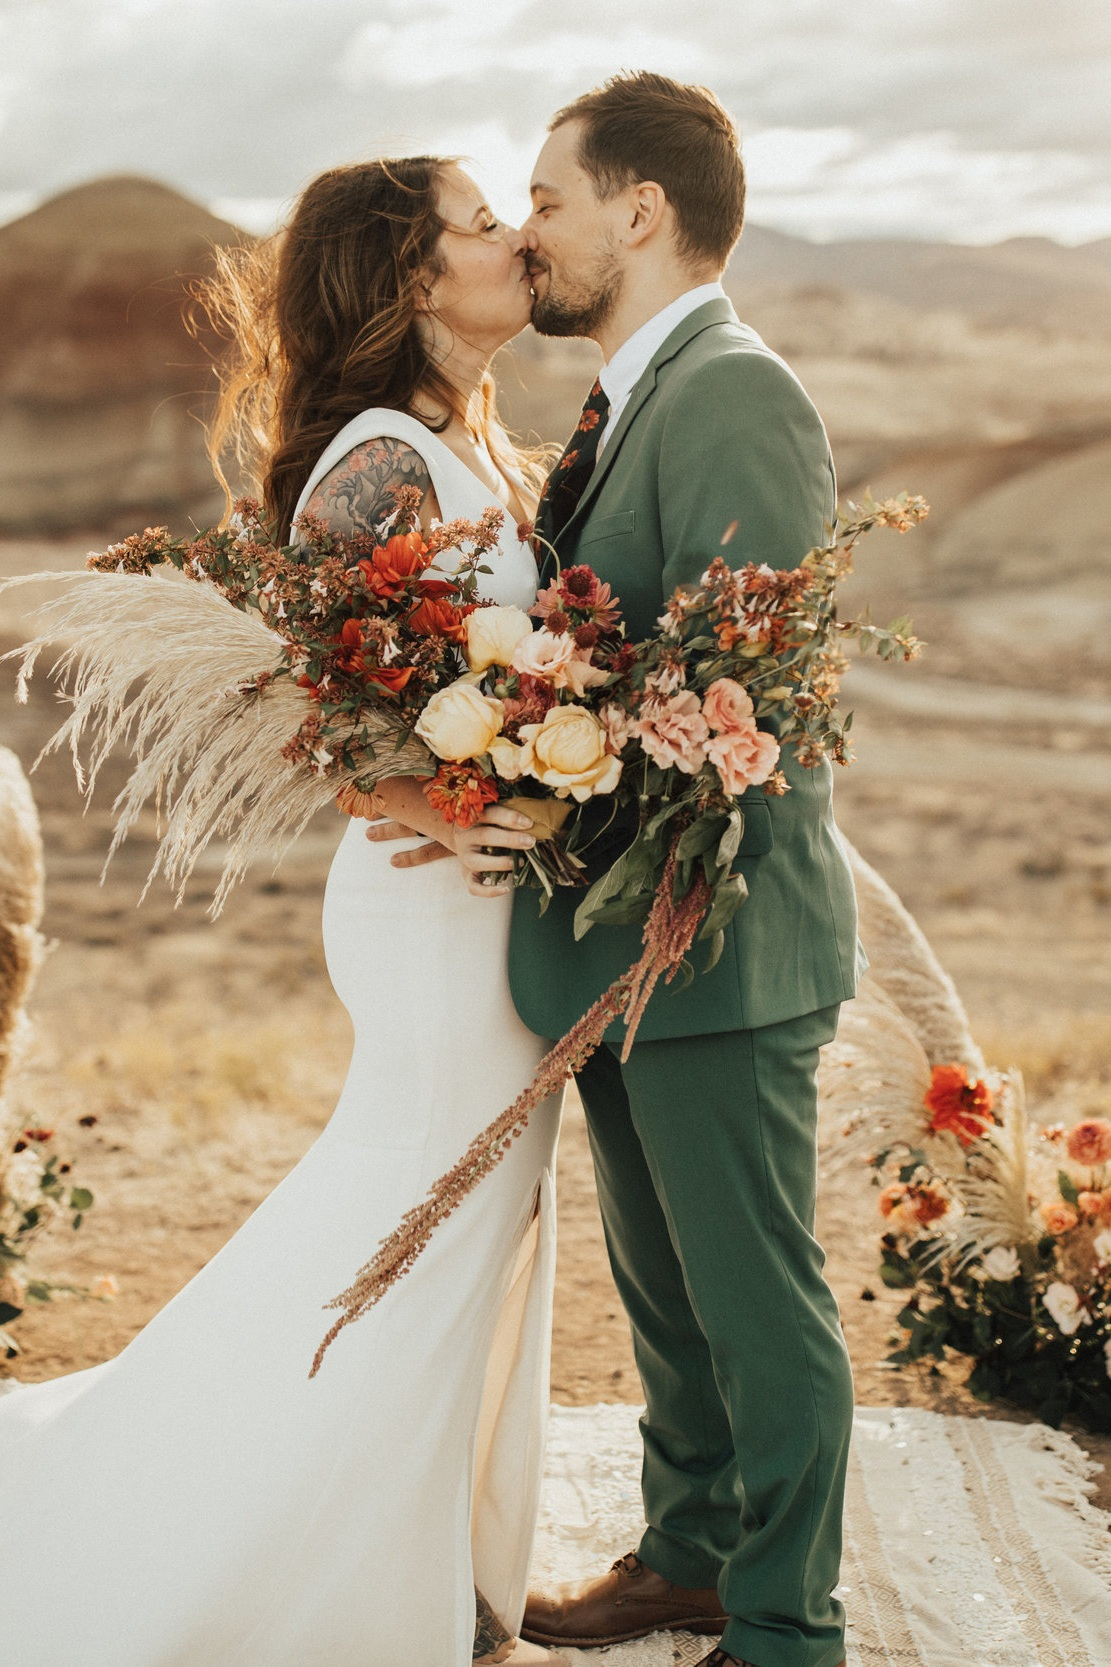 A Painted Hills Elopement - Featuring:Photography: Lauren NicoleStyling: Rock and StoneHAMU: Pacific BridesCake: Sift and GatherDress: a & bè bridalshop